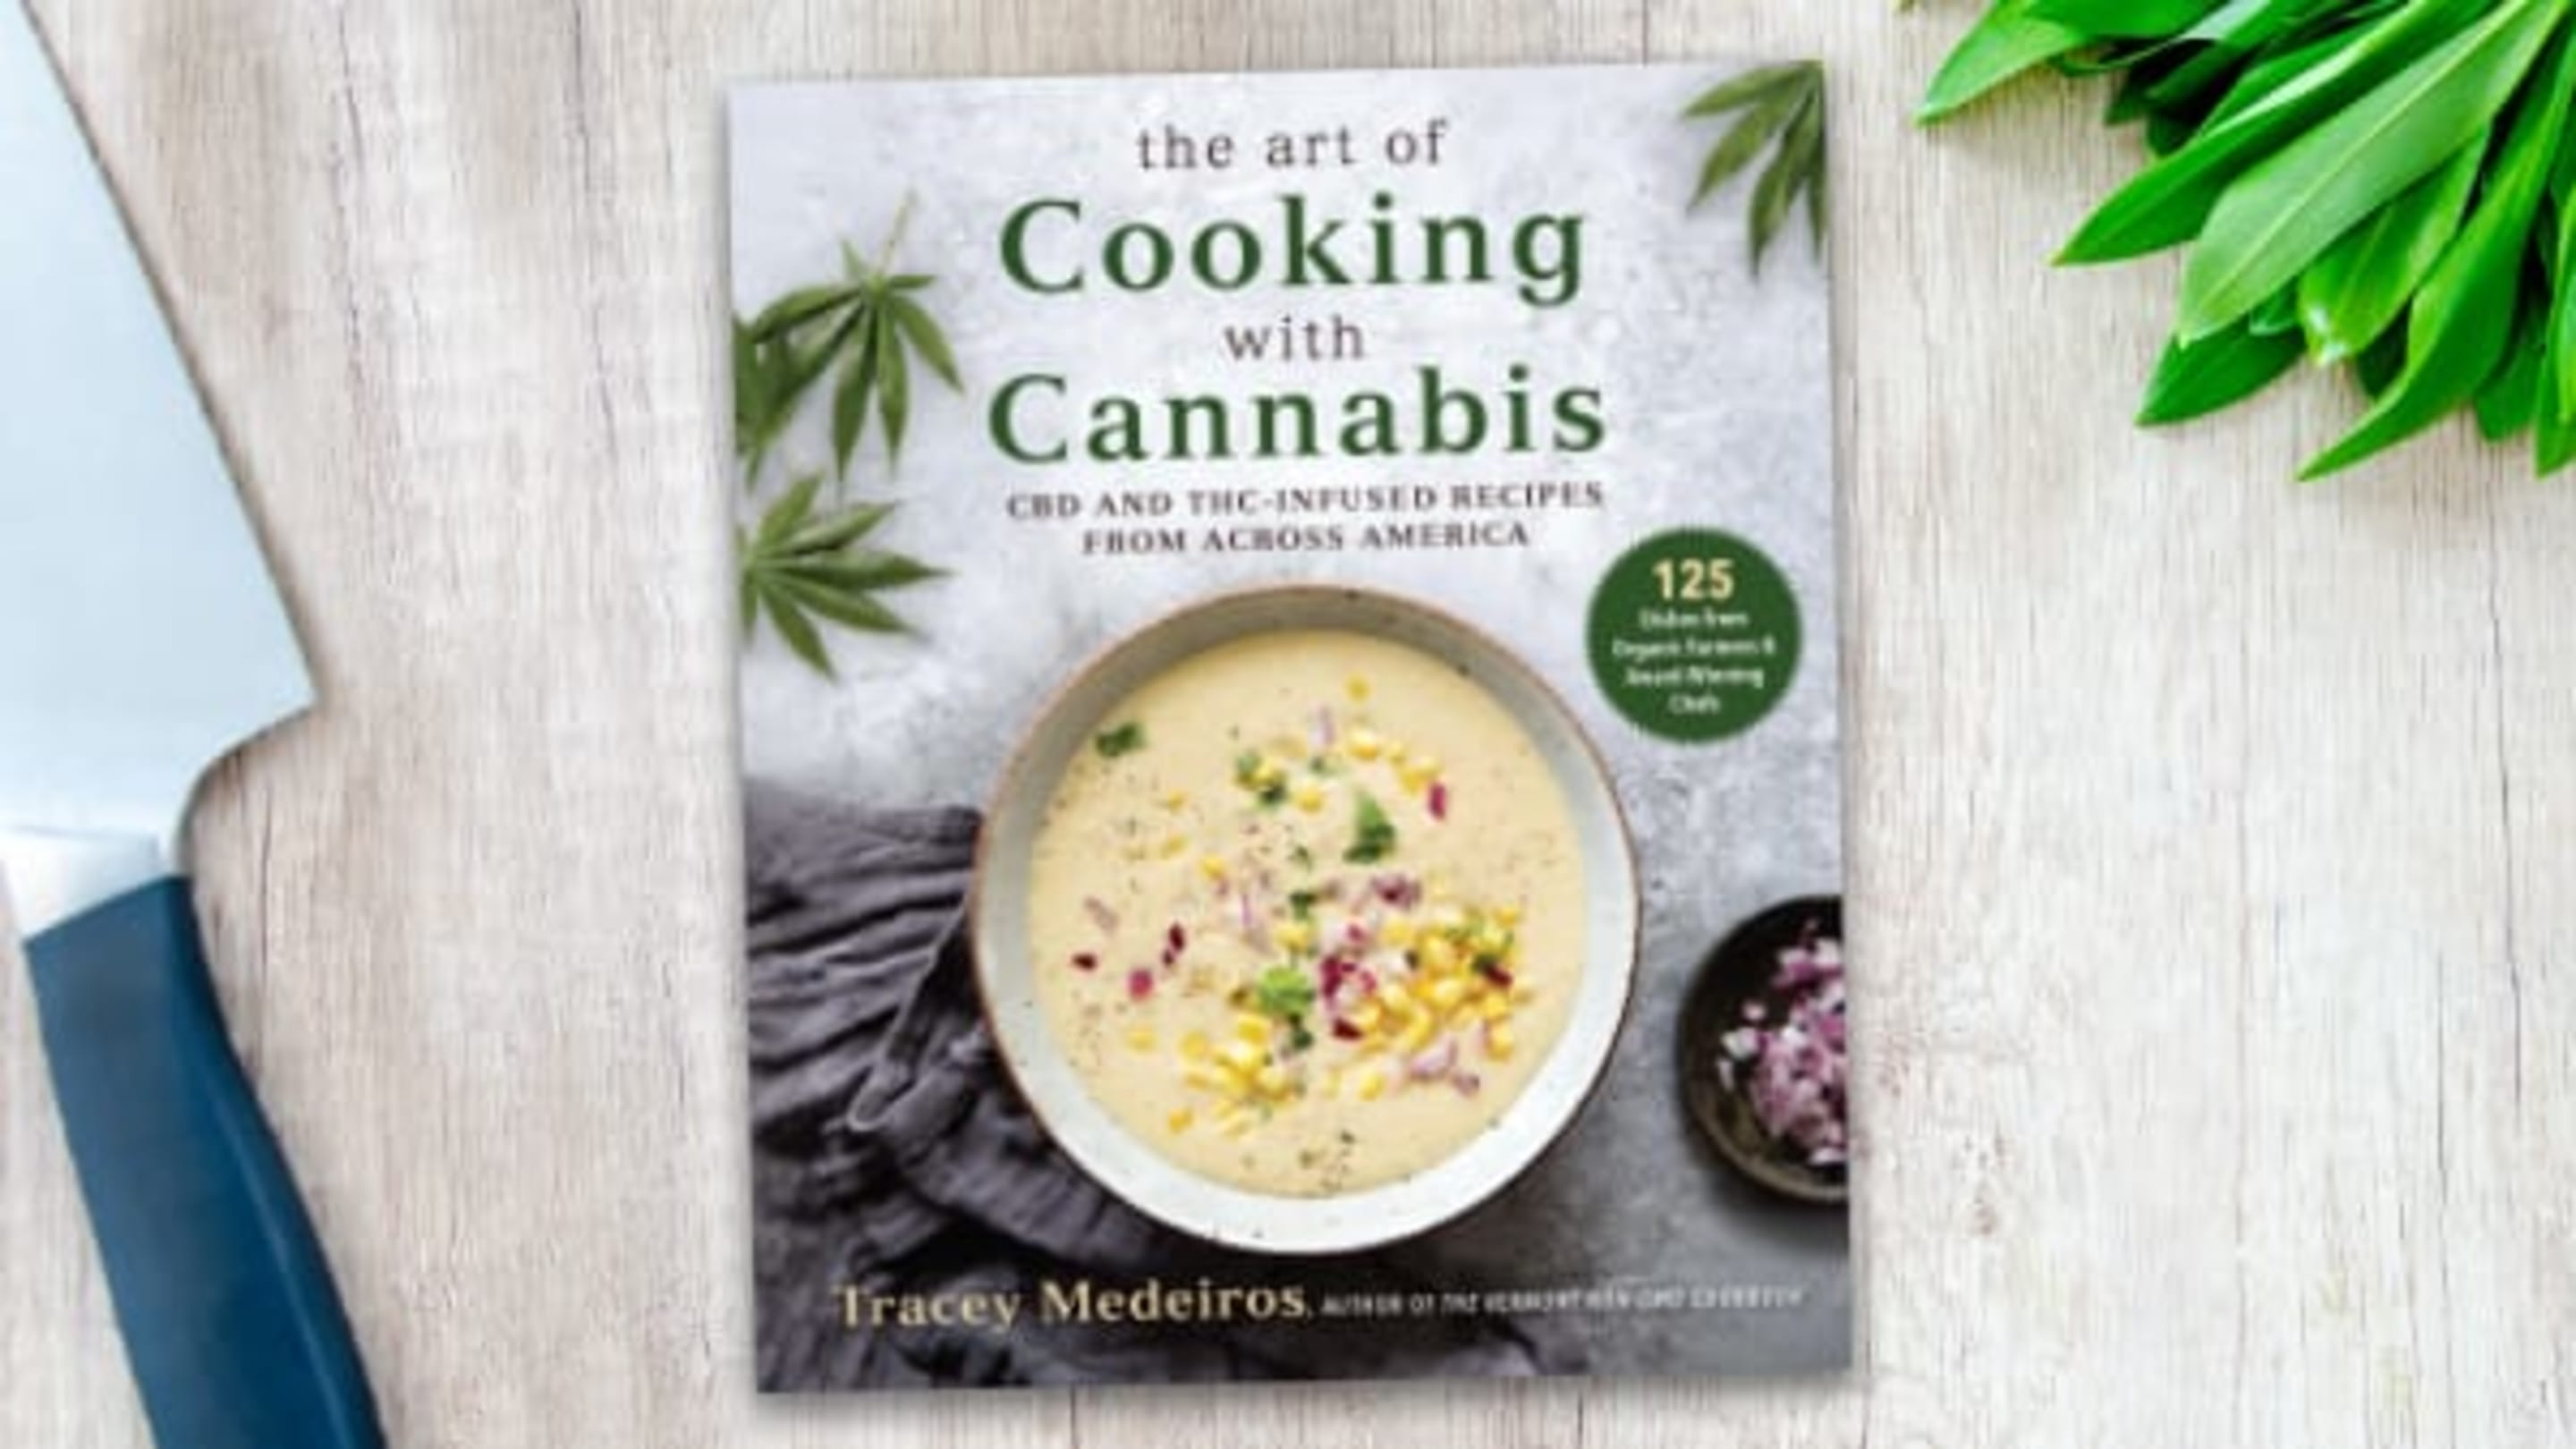 The Art of Cooking with Cannabis: A Cookbook Review